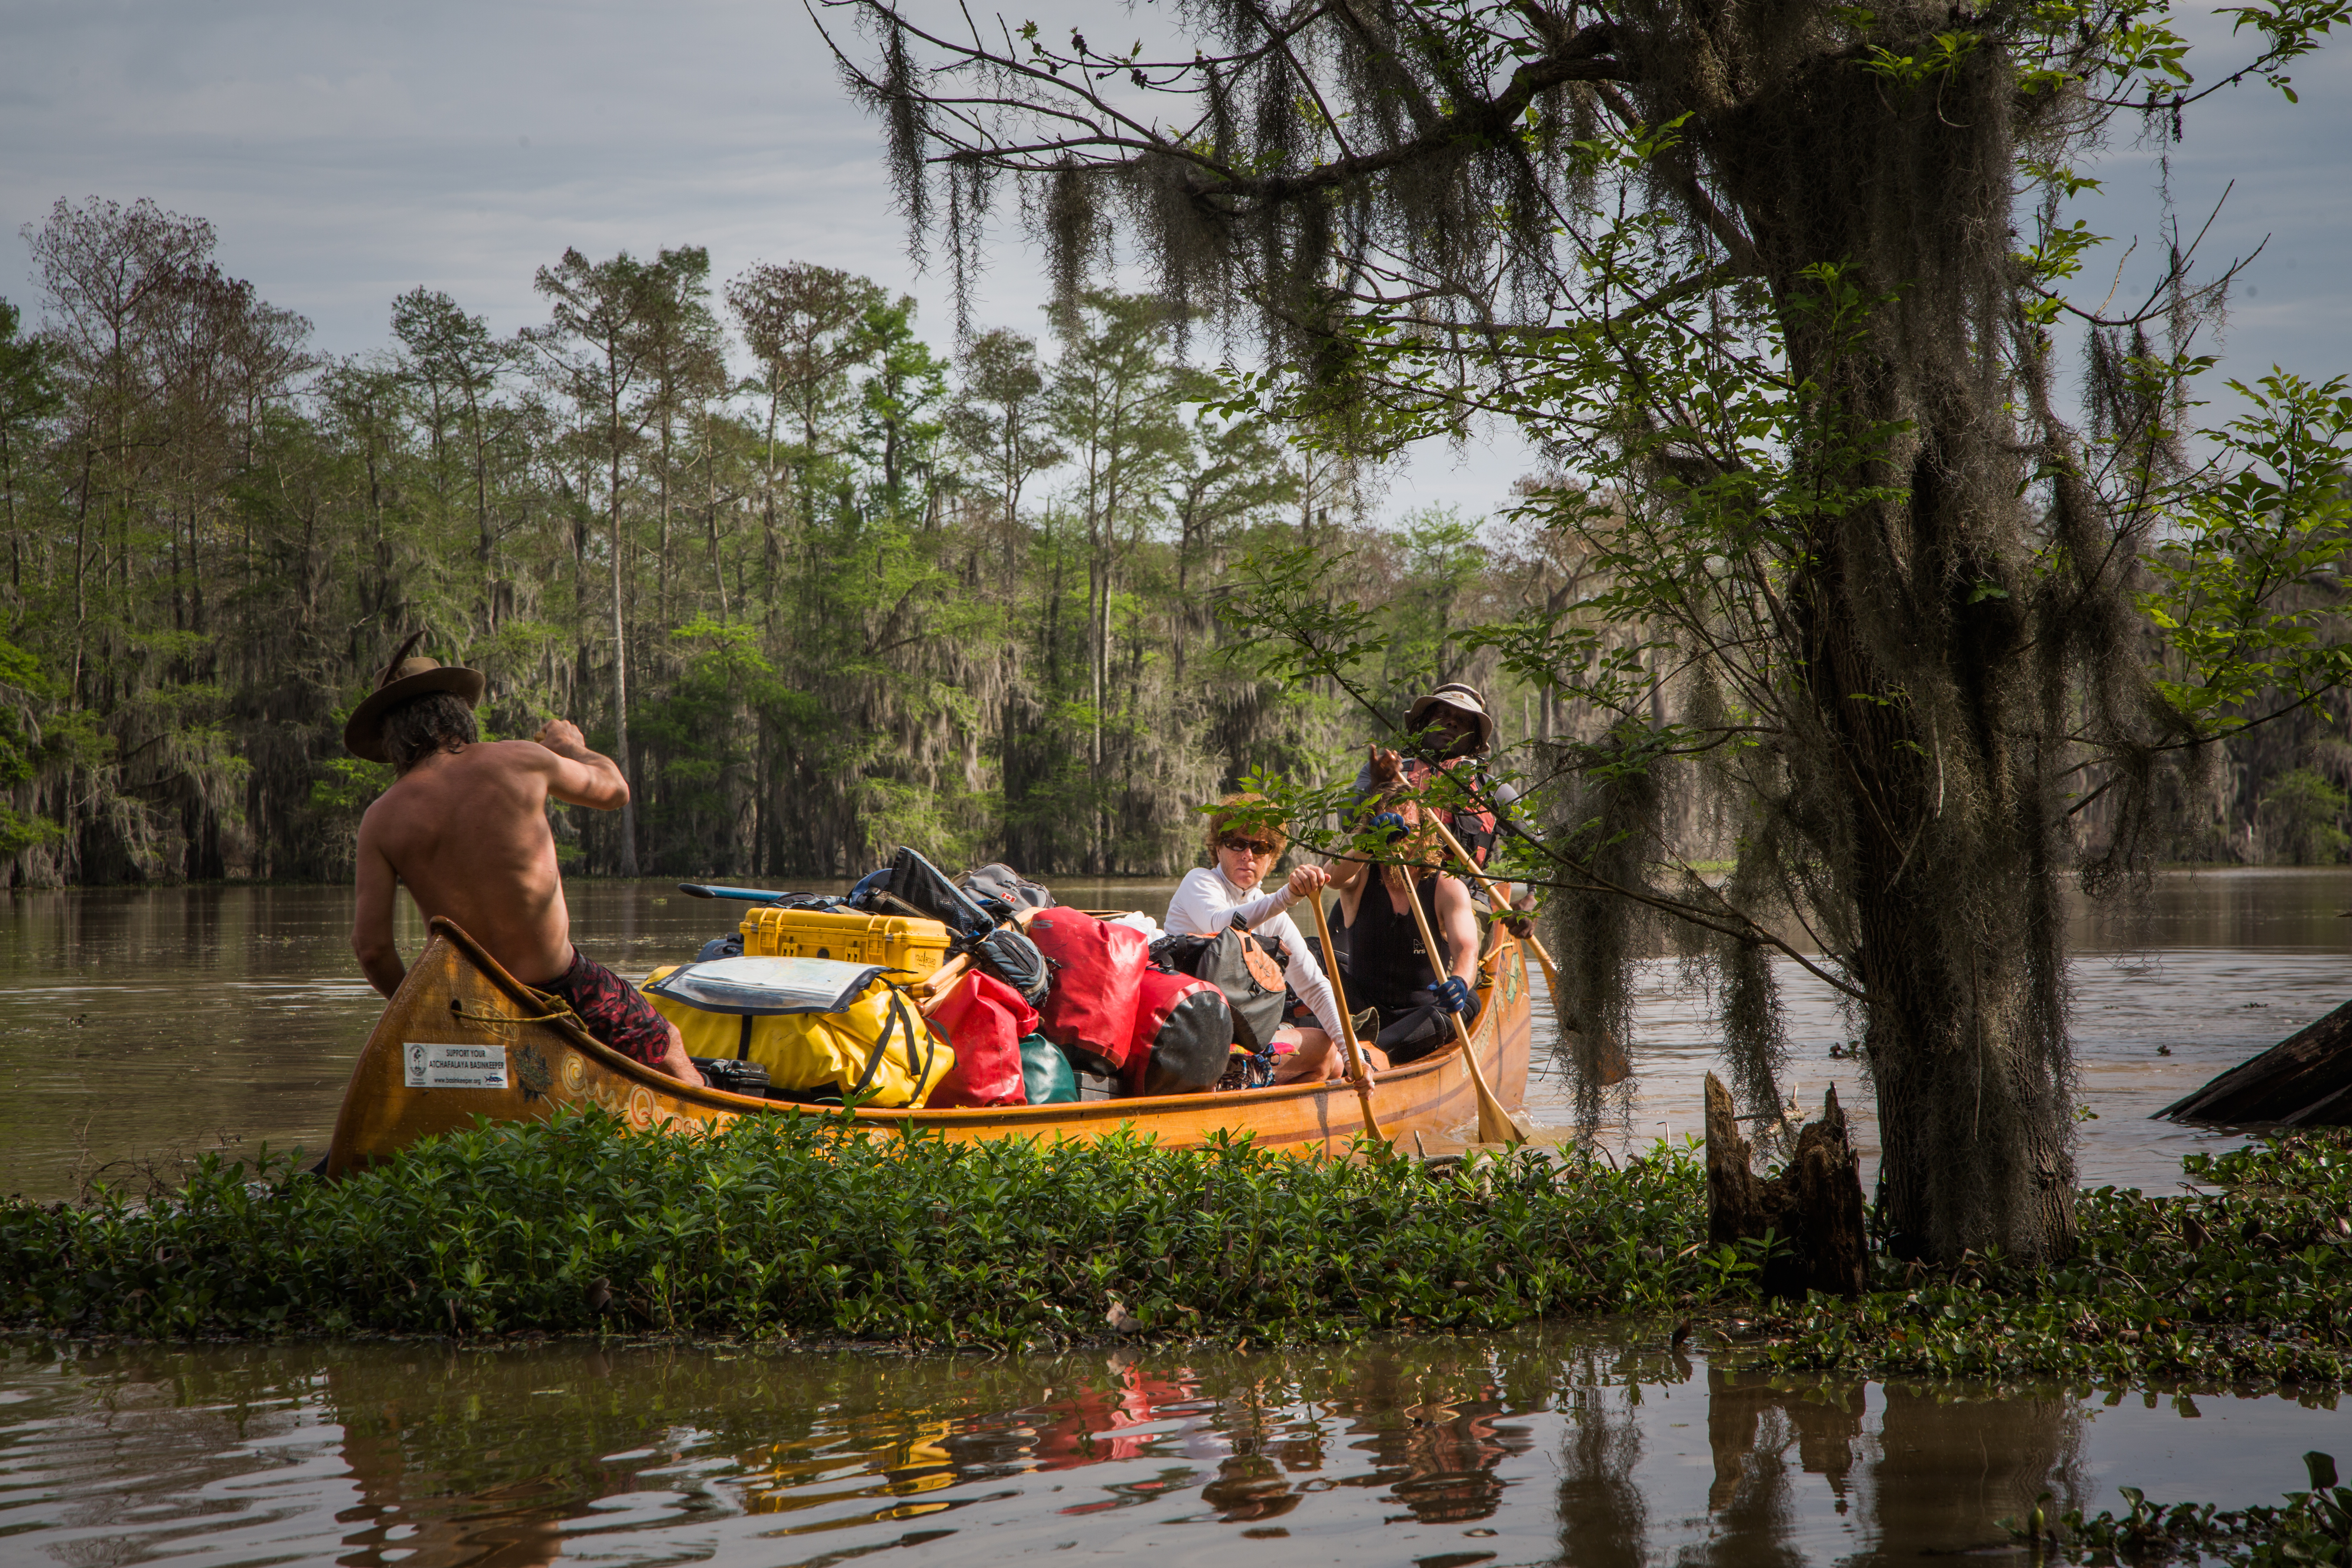 Fully loaded on the Atchafalaya River from the Atchafalaya Rivergator Expedition of 2015. Image courtesy of David Hanson.